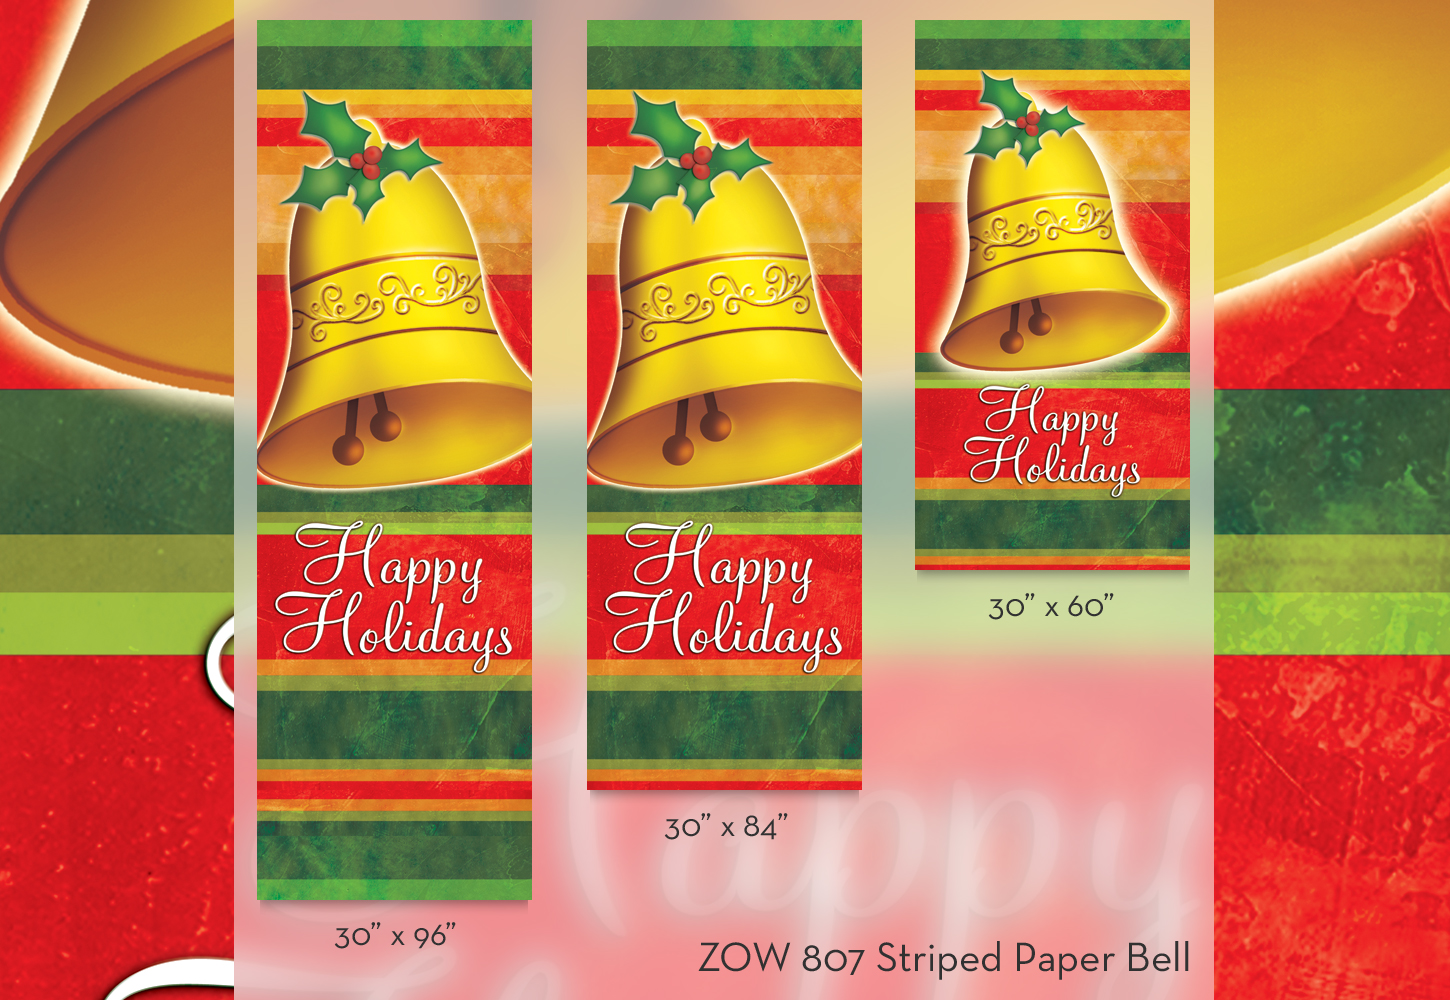 ZOW 807 Striped Paper Bell